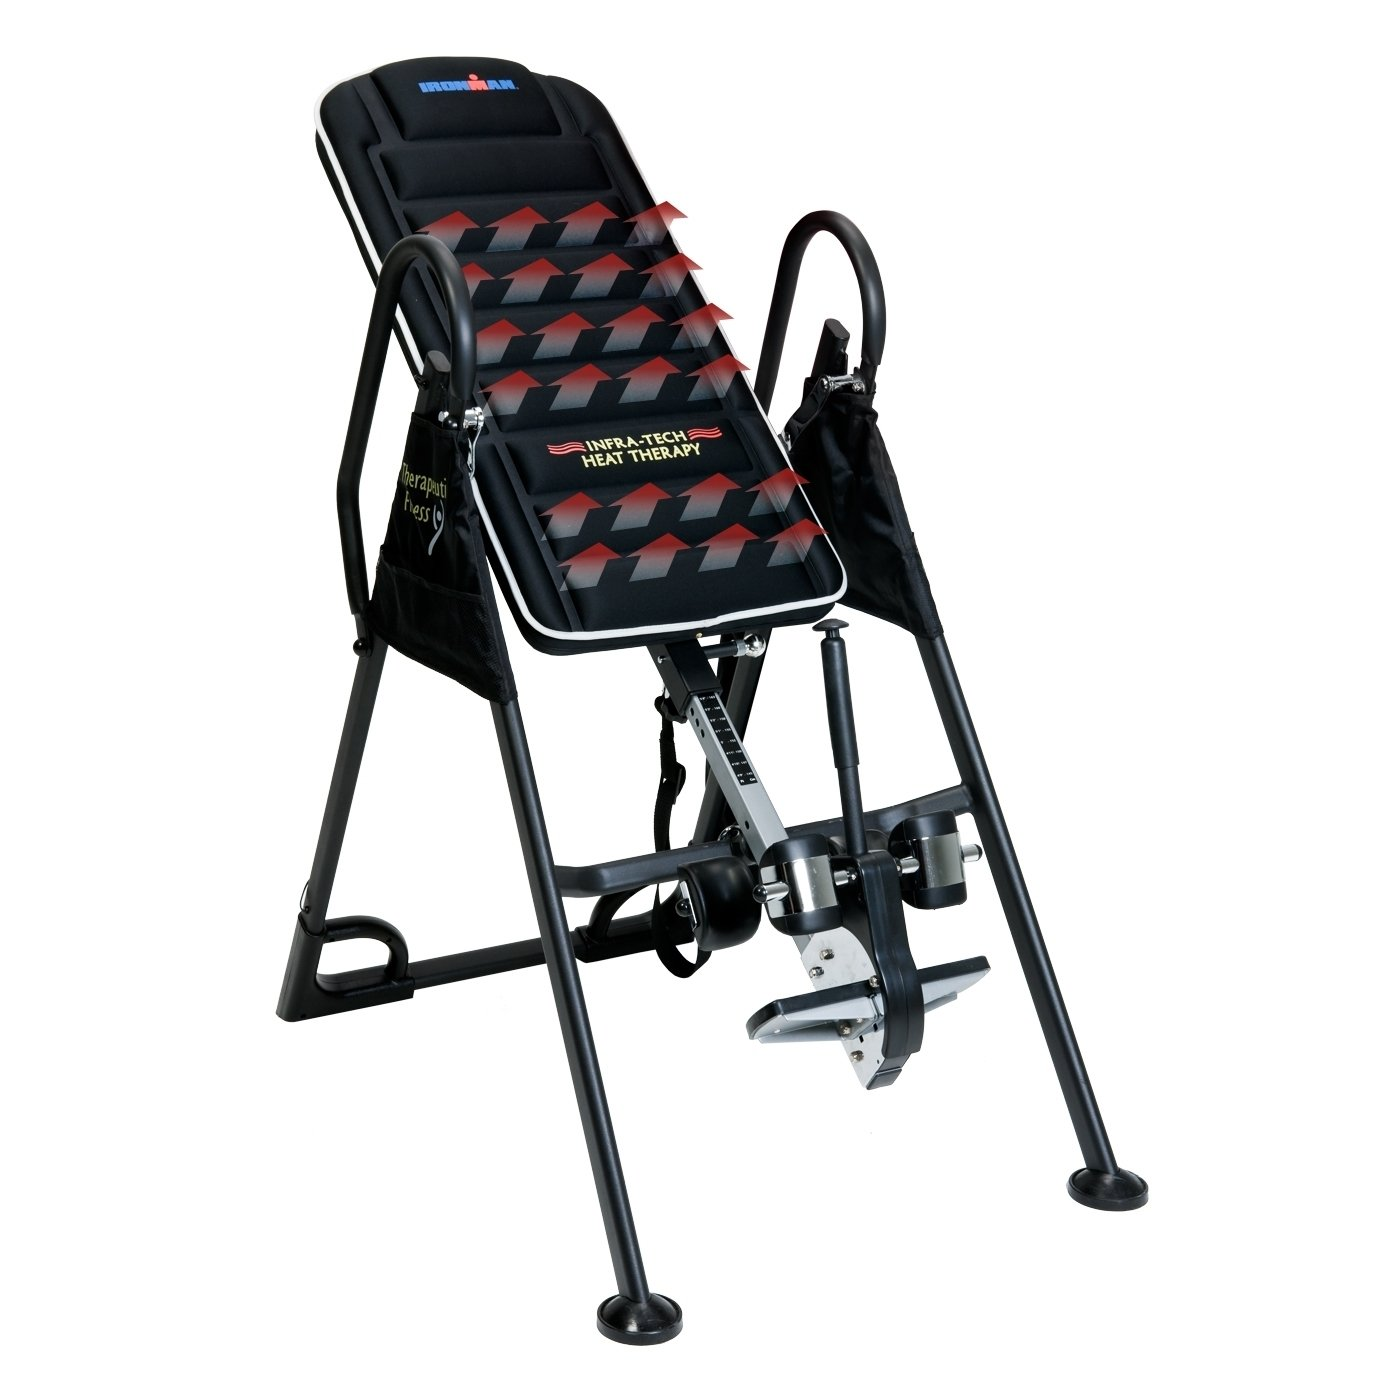 IRONMAN IFT 4000 Infrared Therapy Inversion Table by IRONMAN